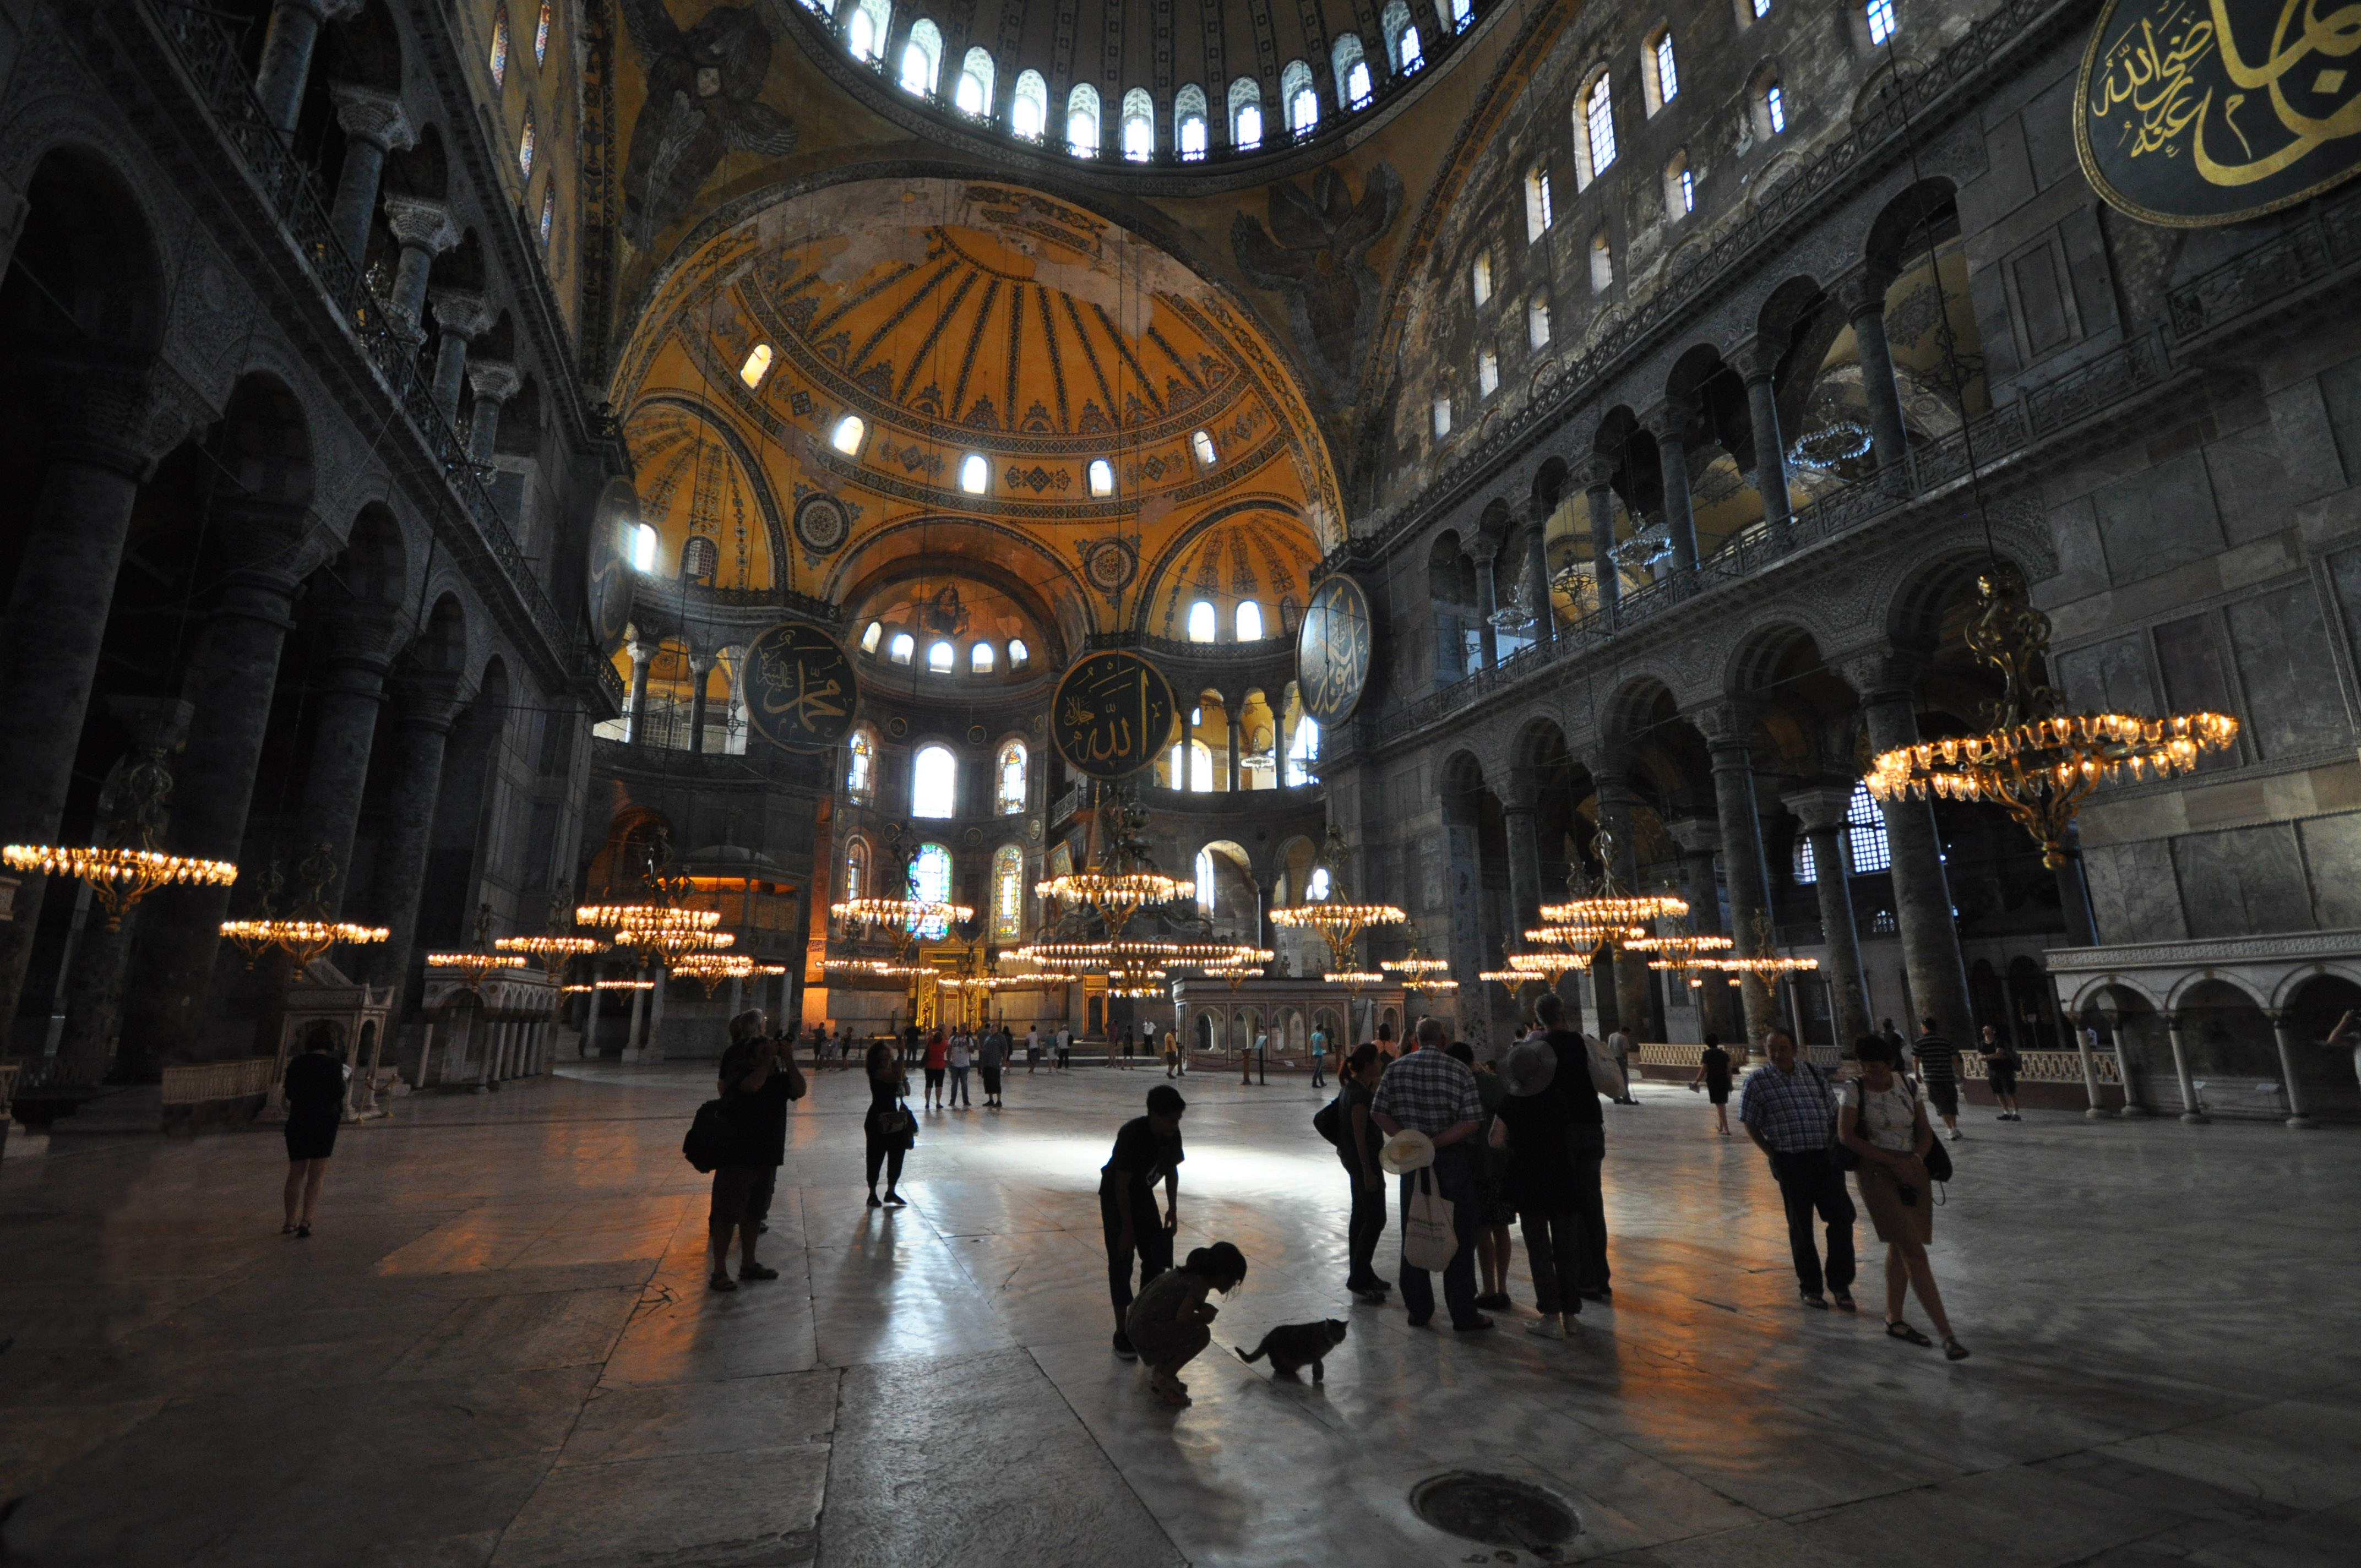 This isn't the first time the Hagia Sophia has been at the center of political turmoil.